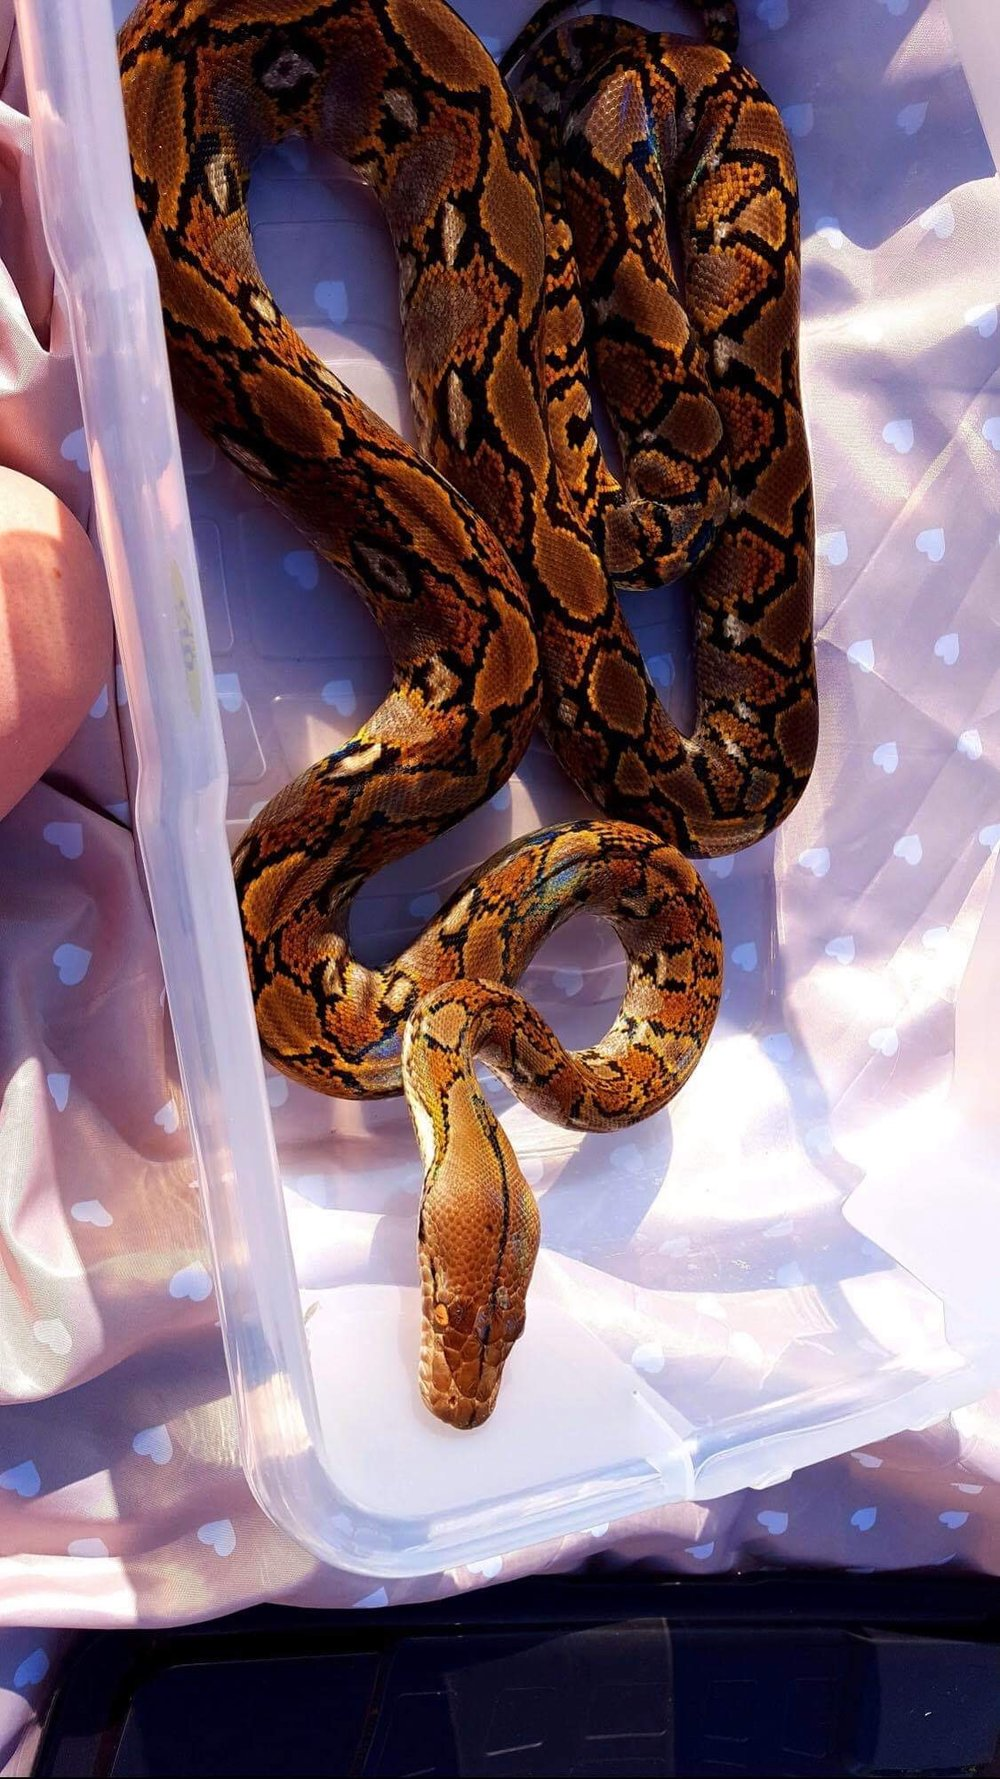 REGGIE THE RETICULATED PYTHON